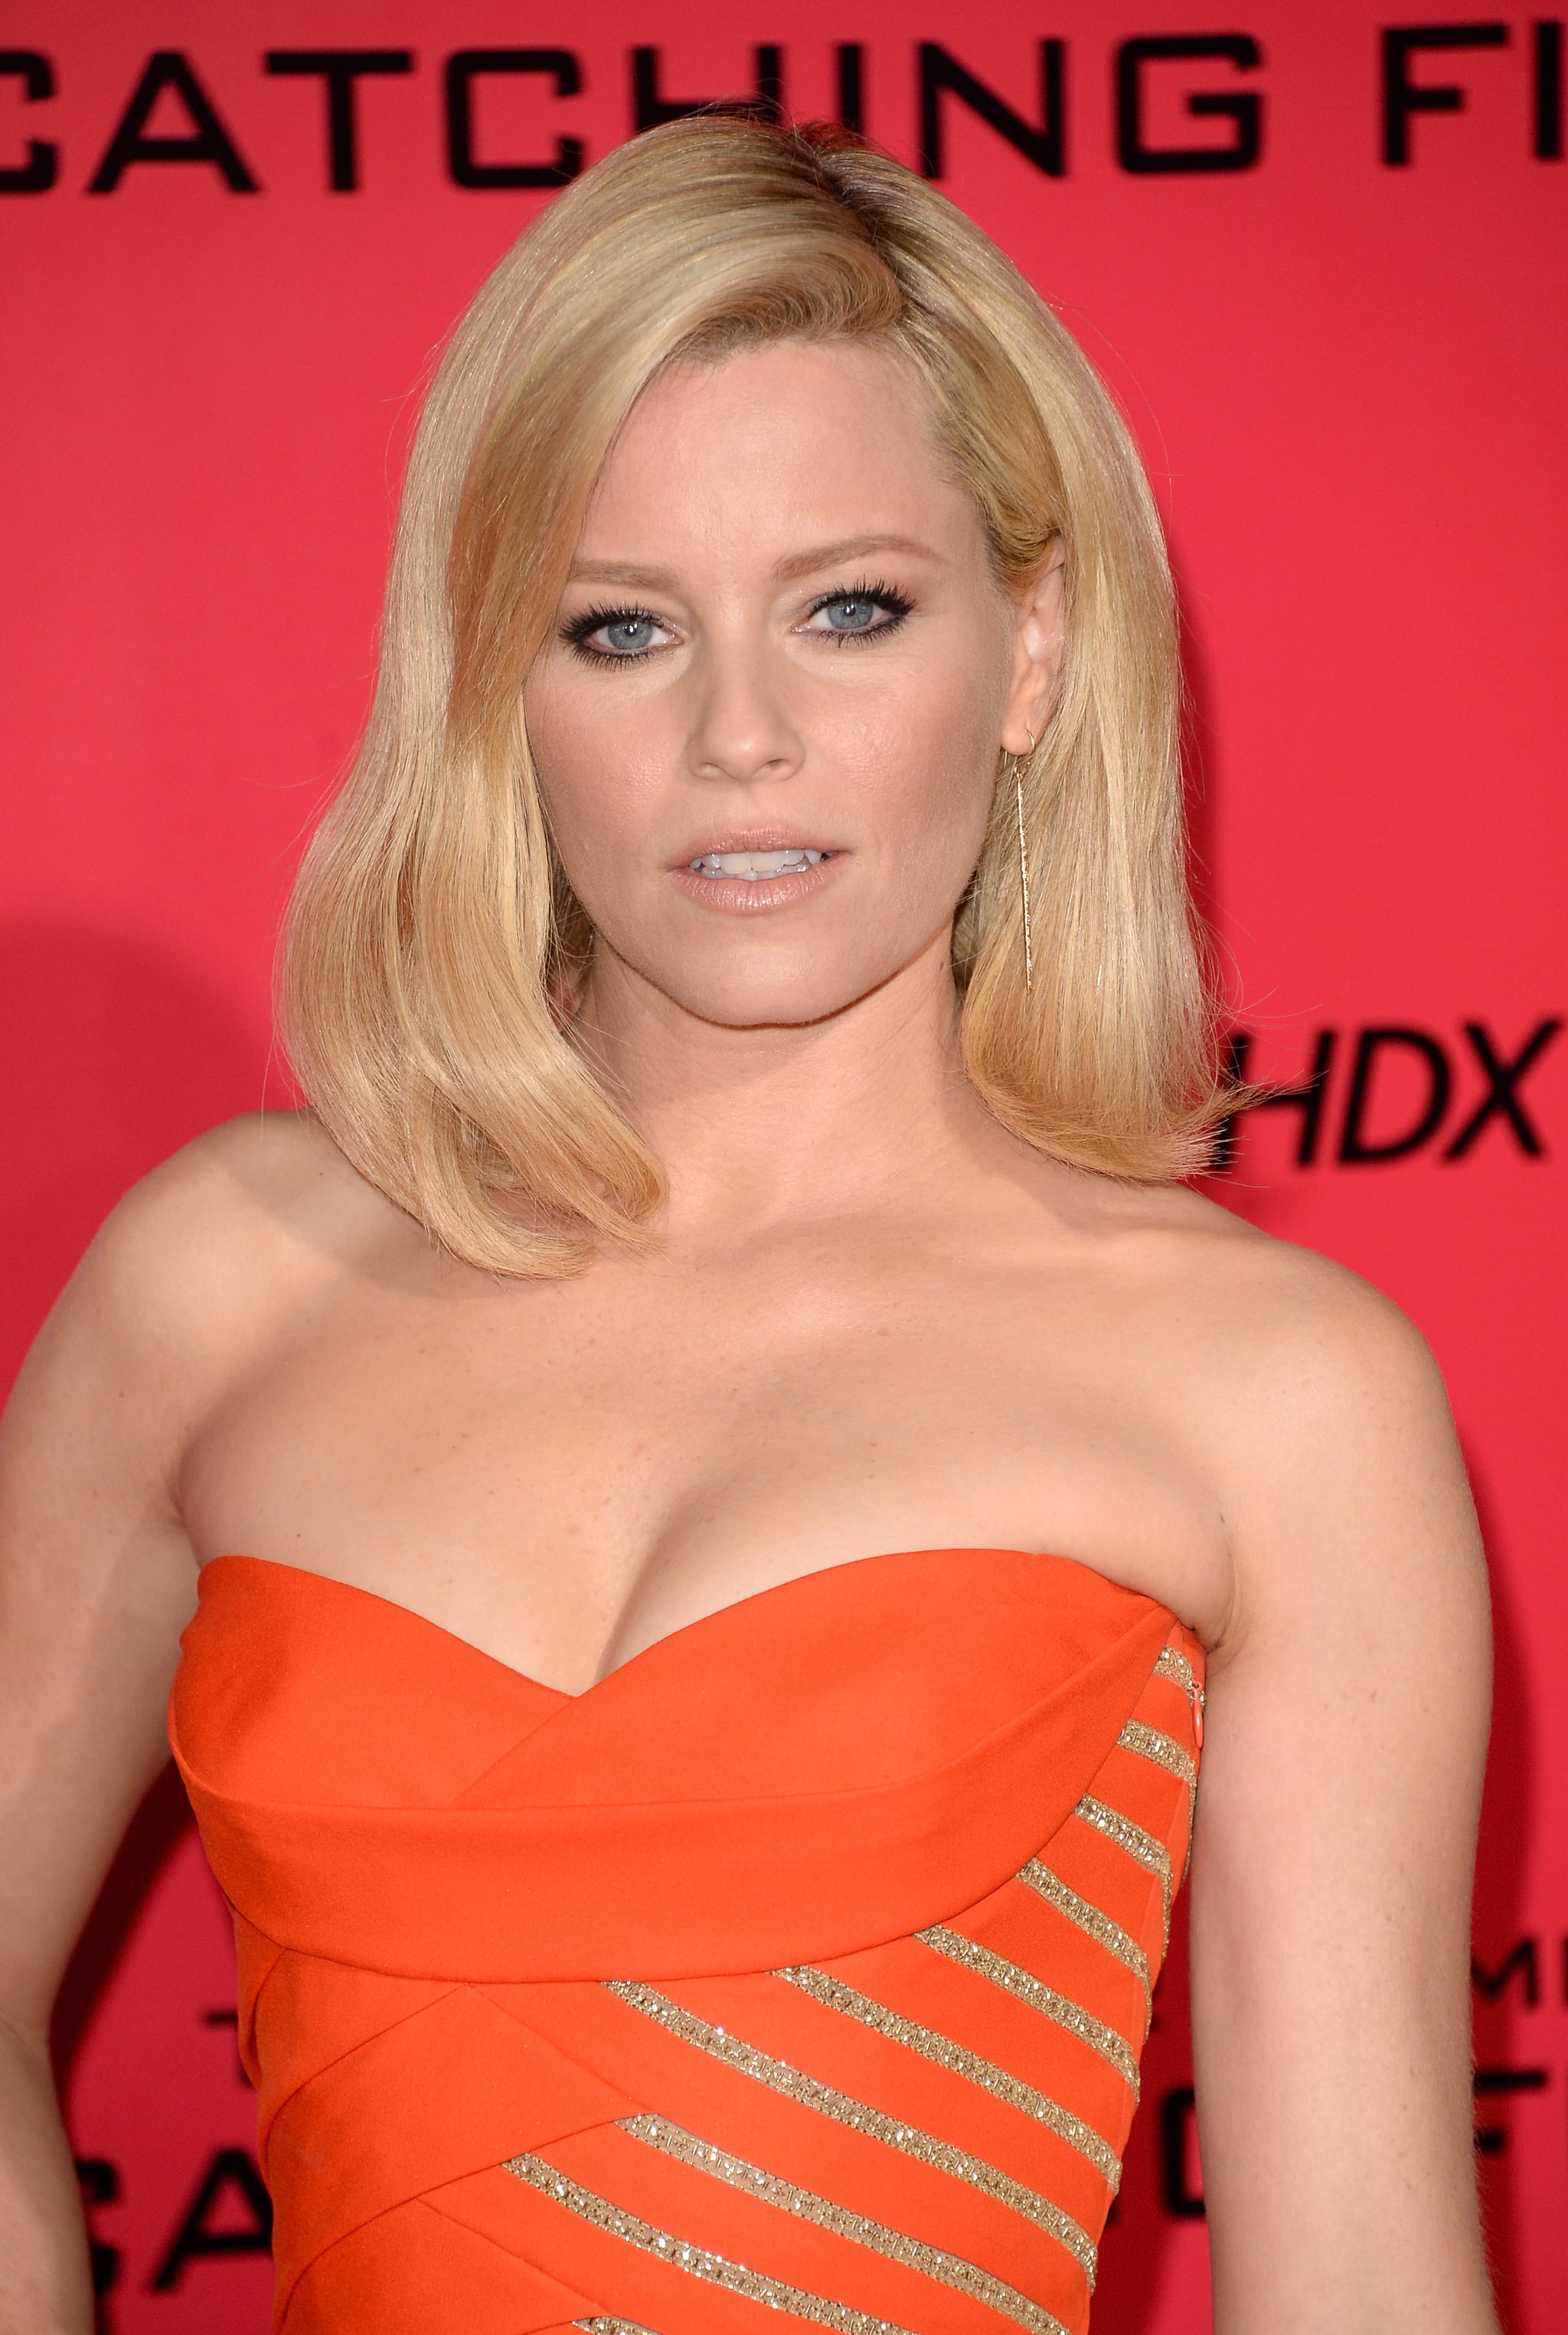 Elizabeth Banks chose a sultry style for the LA debut of Catching Fire. She wore her hair in a voluminous blowout, with the focal point of her makeup palette being her smudged black eyeliner.